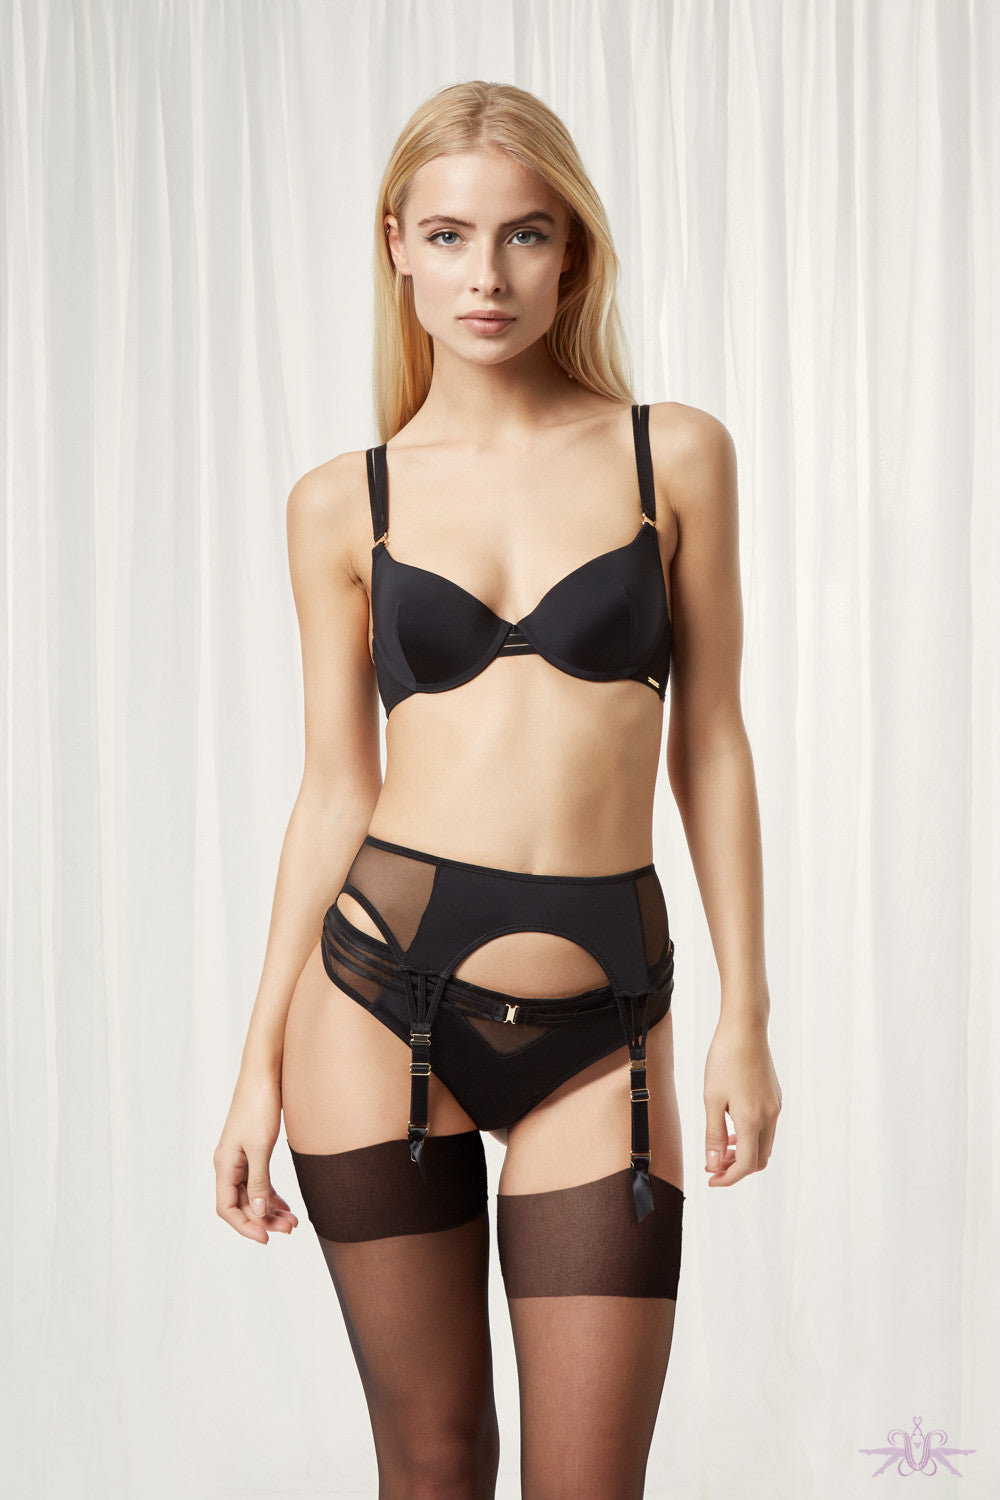 Bluebella Laura Suspender Belt - Mayfair Stockings